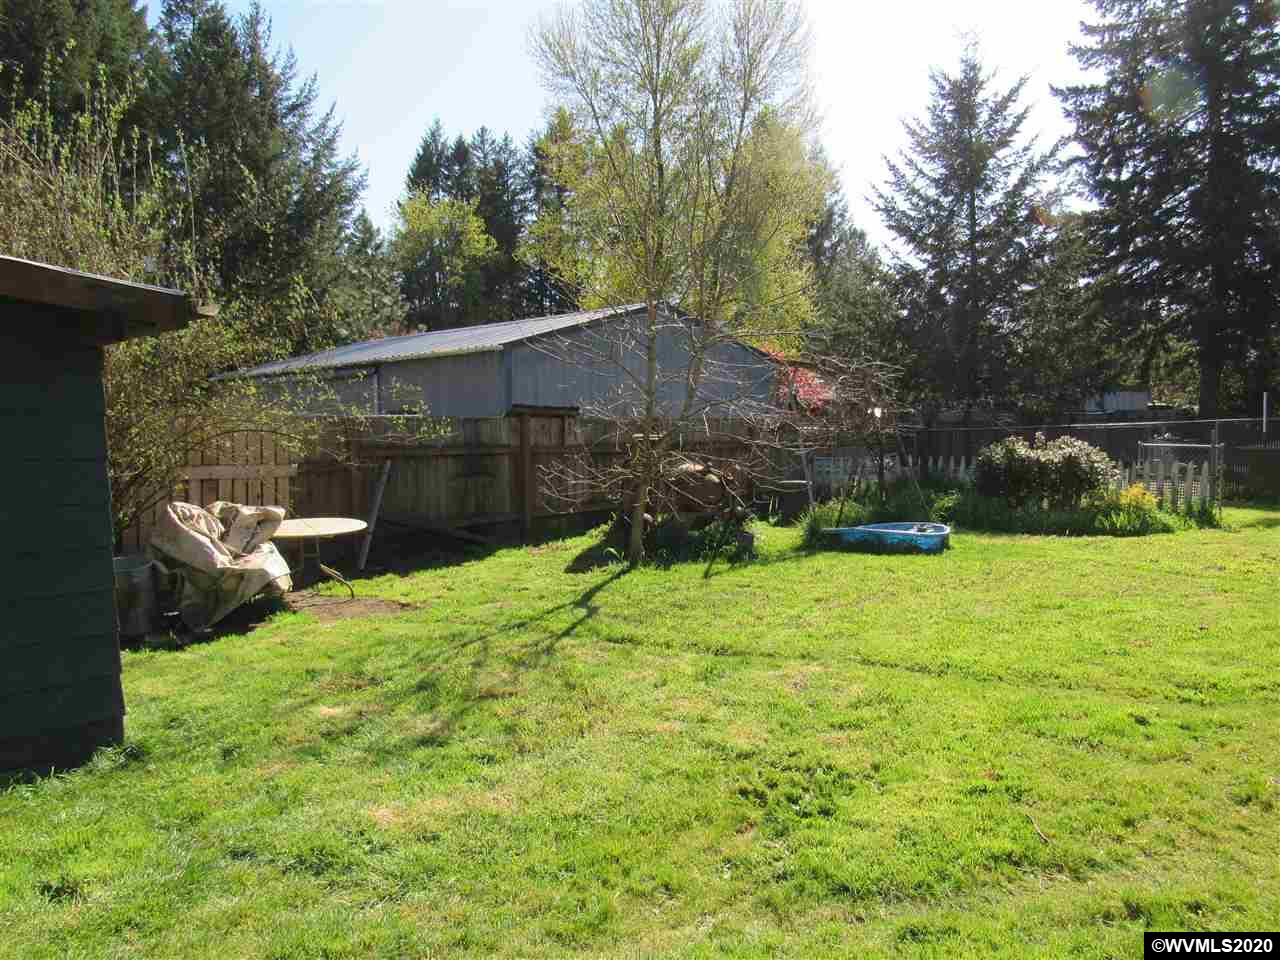 554 S Fairview St, Mill City, Oregon 97360, 2 Bedrooms Bedrooms, ,1 BathroomBathrooms,Residence,For sale,554 S Fairview St,762778